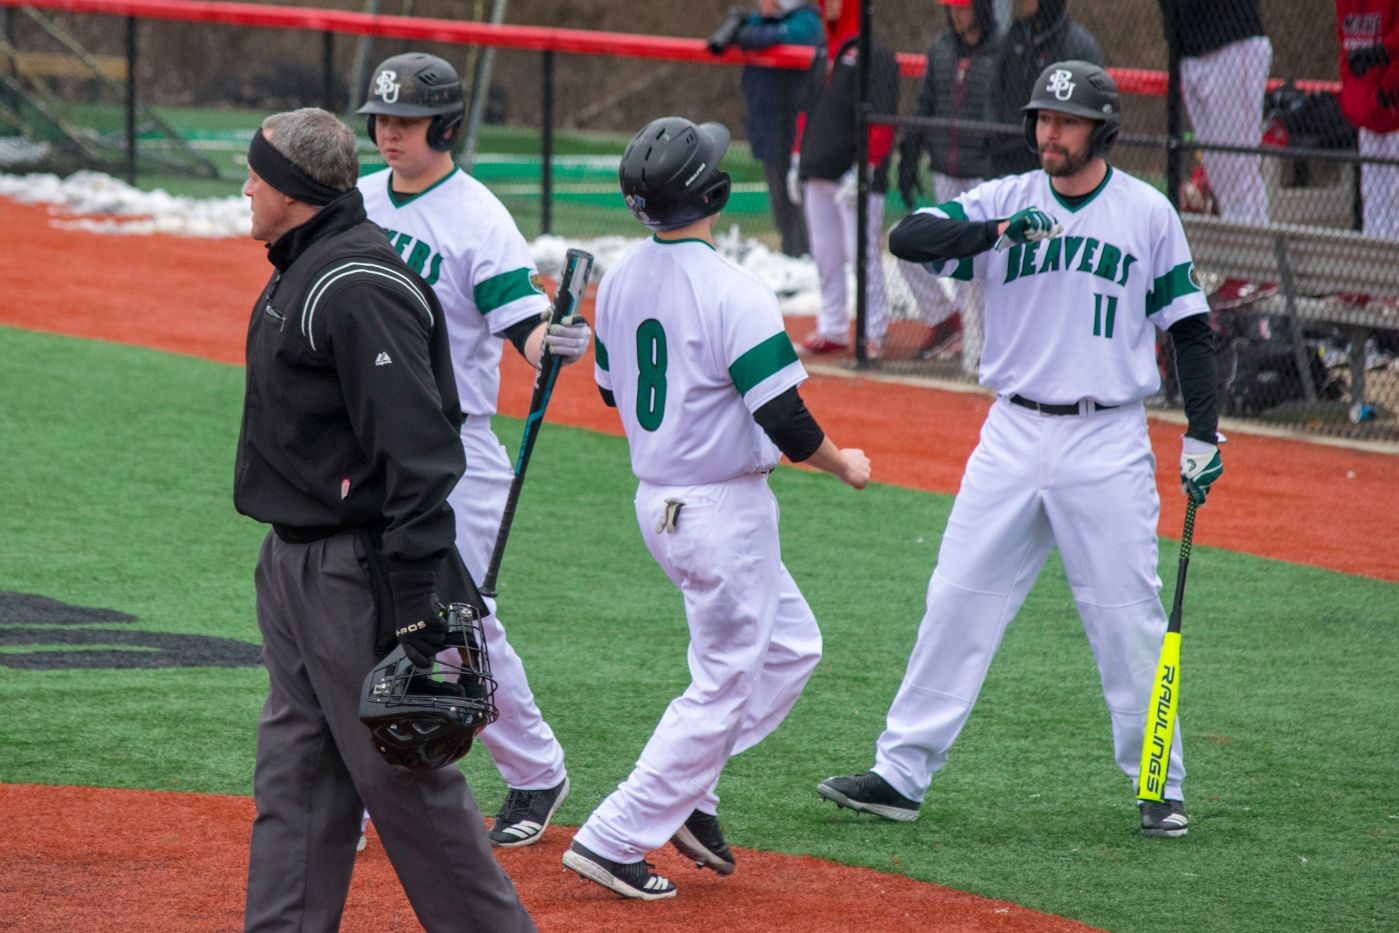 Beavers catch fire in two innings of 13-5 win against Saints